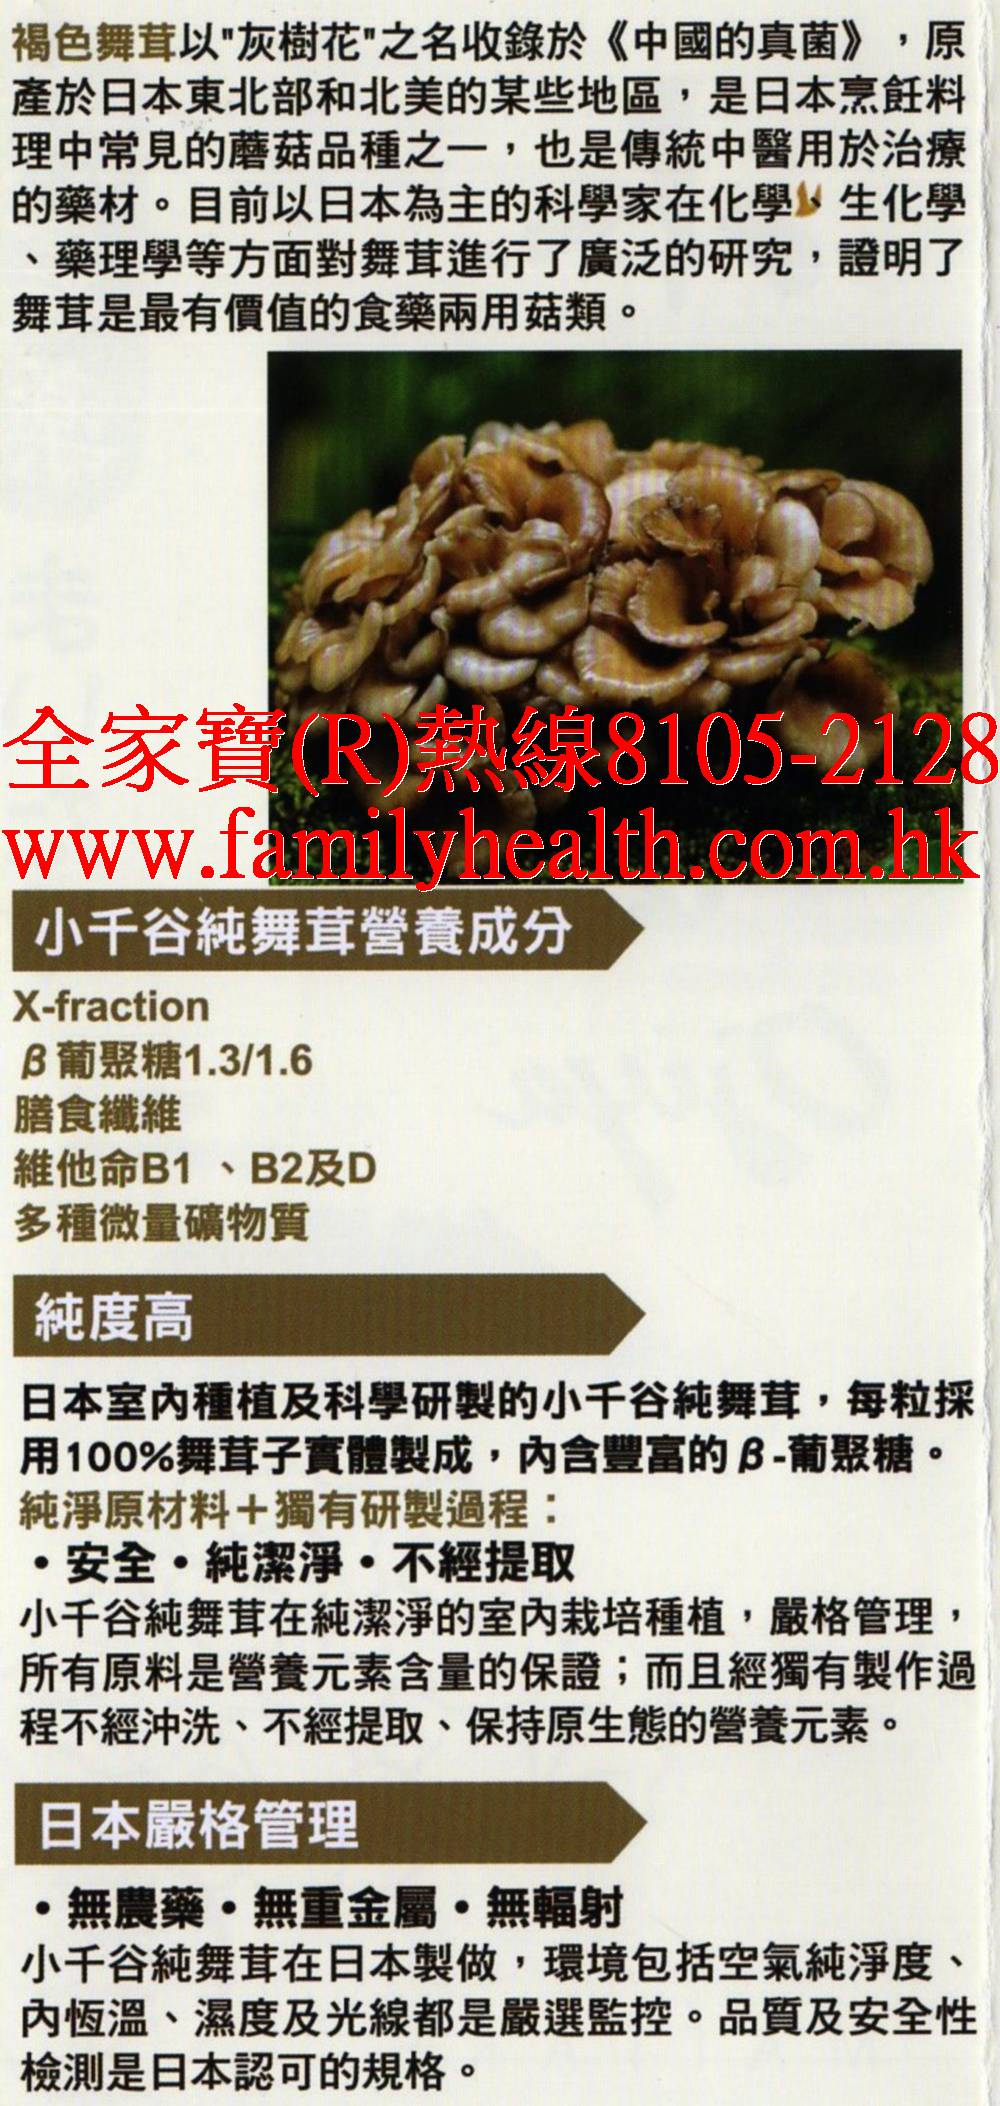 http://www.familyhealth.com.hk/files/full/939_2.jpg